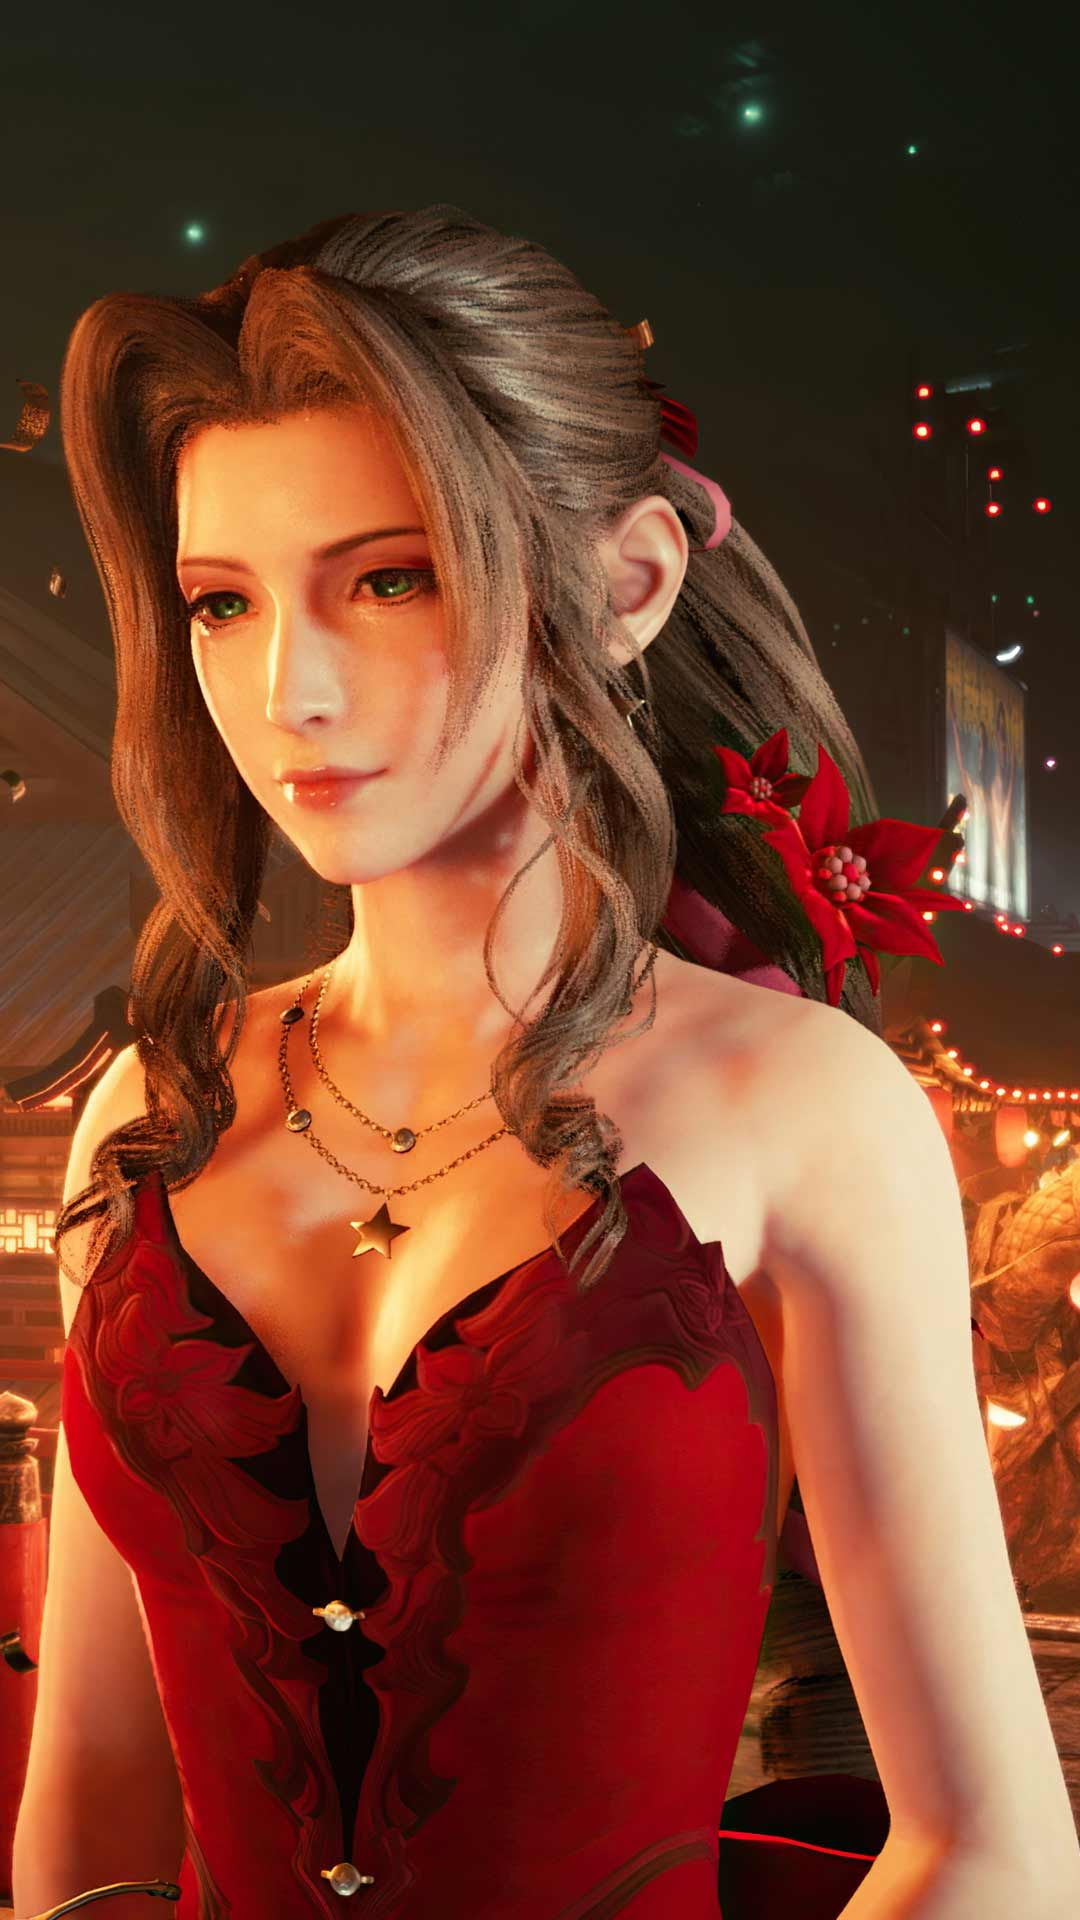 Final Fantasy 7 Remake Wallpaper Hd Phone Backgrounds Ps4 Game Art Poster Logo On Iphone Android In 2020 Final Fantasy Vii Final Fantasy Vii Remake Final Fantasy Girls